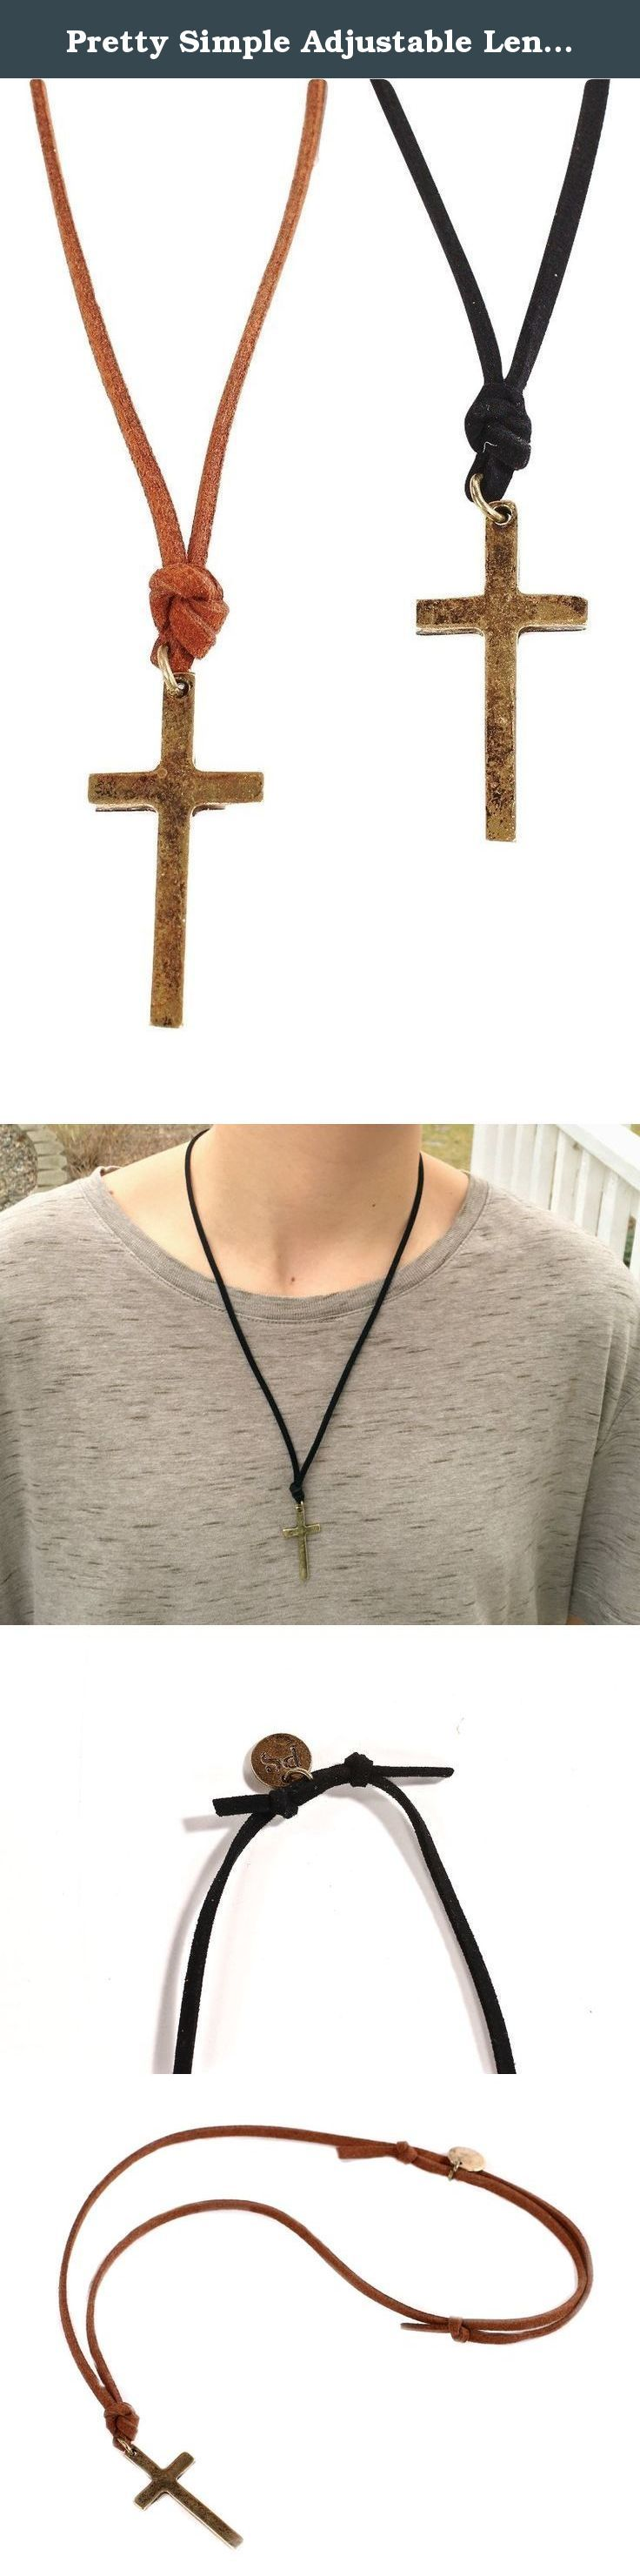 Pretty Simple Adjustable Length Unisex Simple Leather Cross Necklace (Brown). Searching for a simple cross necklace suitable for men or women was hard to find. Until now! We have designed 2, very classic cross necklaces that are both meaningful and stylish. Both are strung from black or brown leather cording. Perfect confirmation, graduation, birthday, teacher gift.